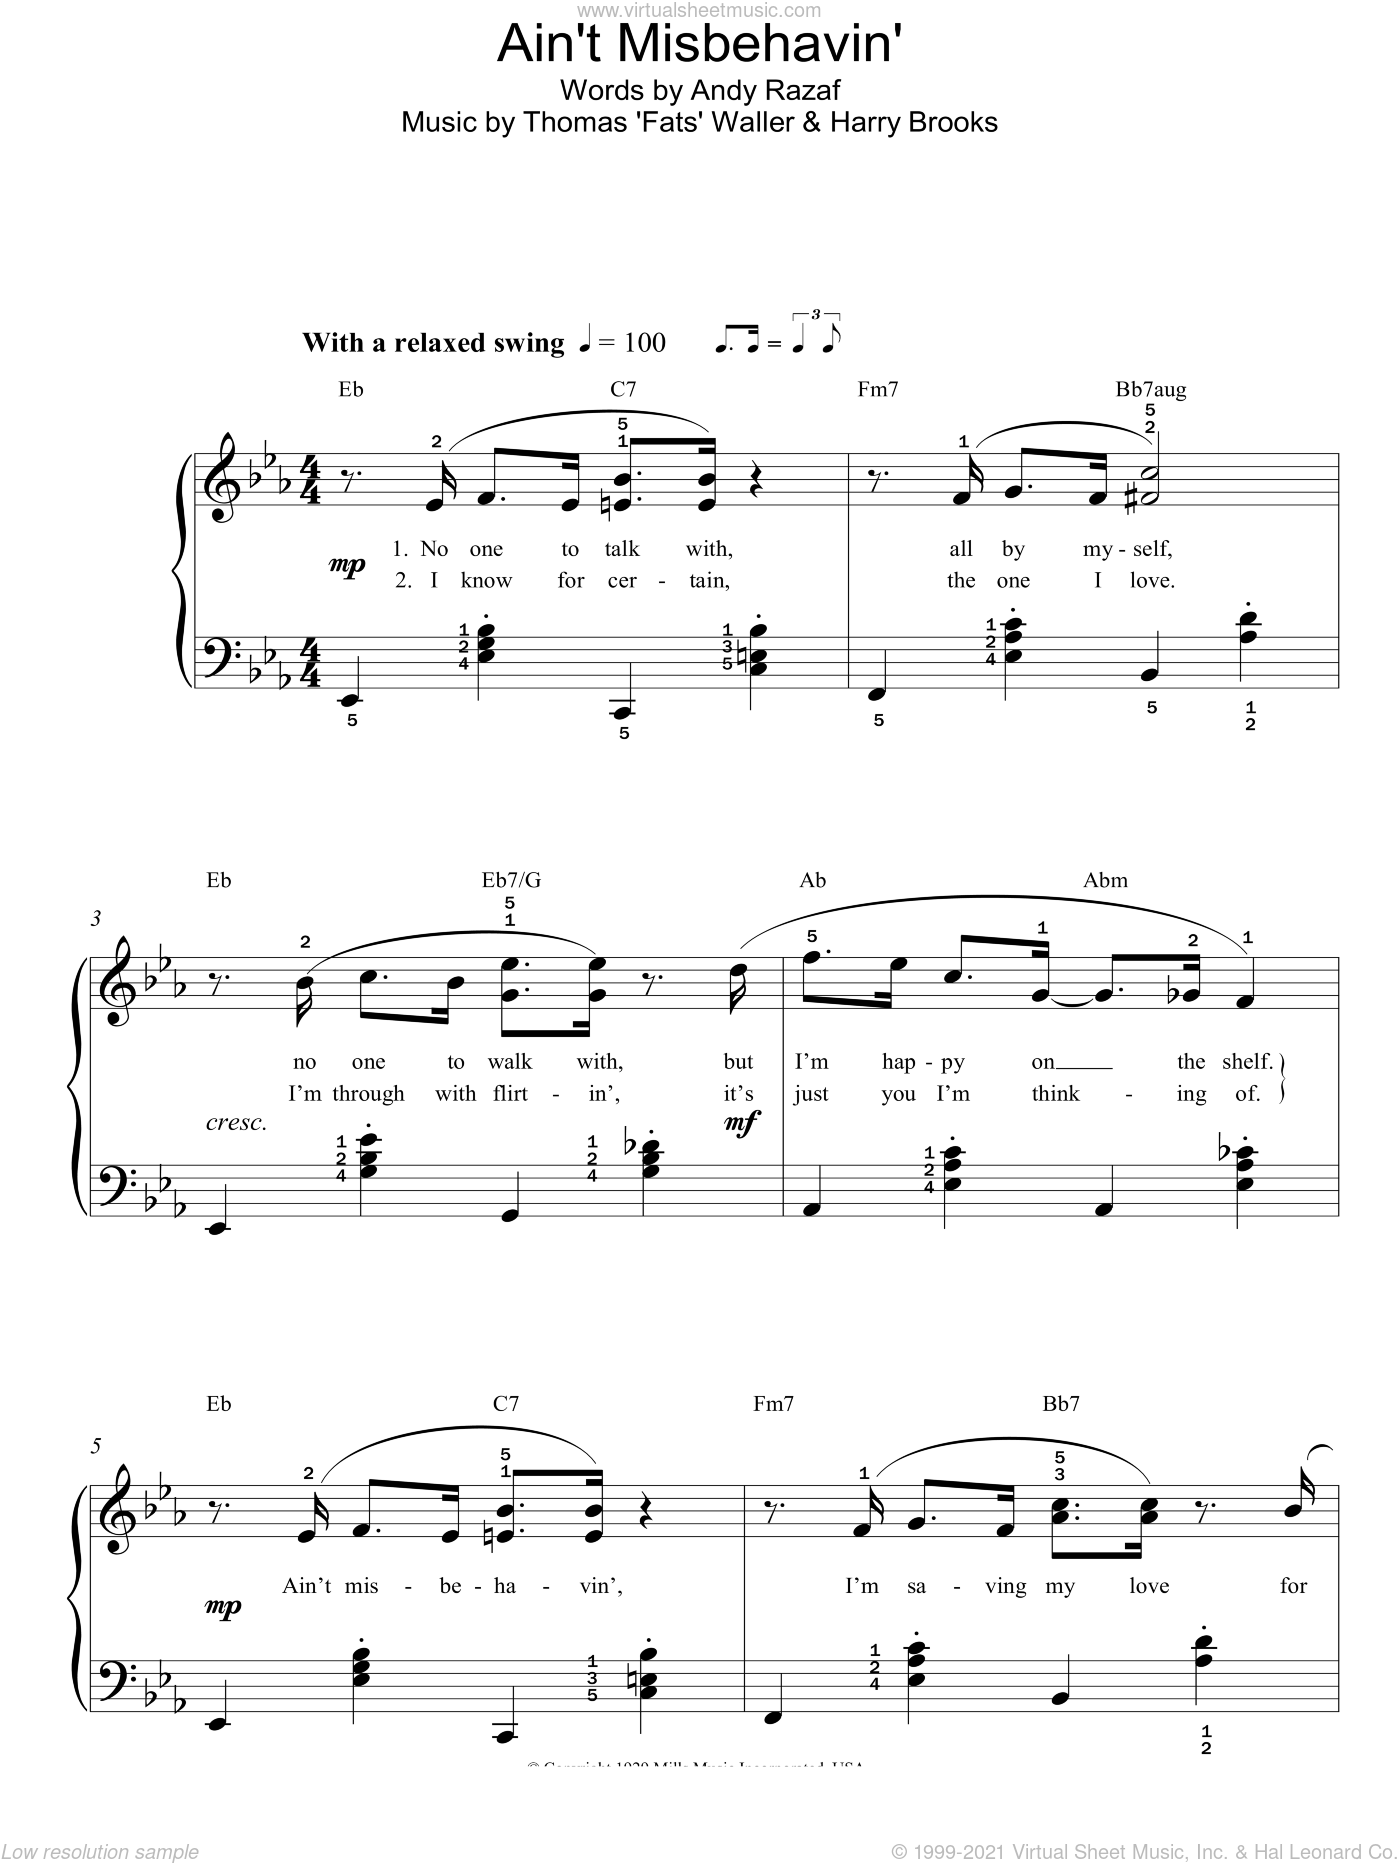 Ain't Misbehavin' sheet music for piano solo by Thomas Waller, Harry Brooks and Andy Razaf, easy skill level